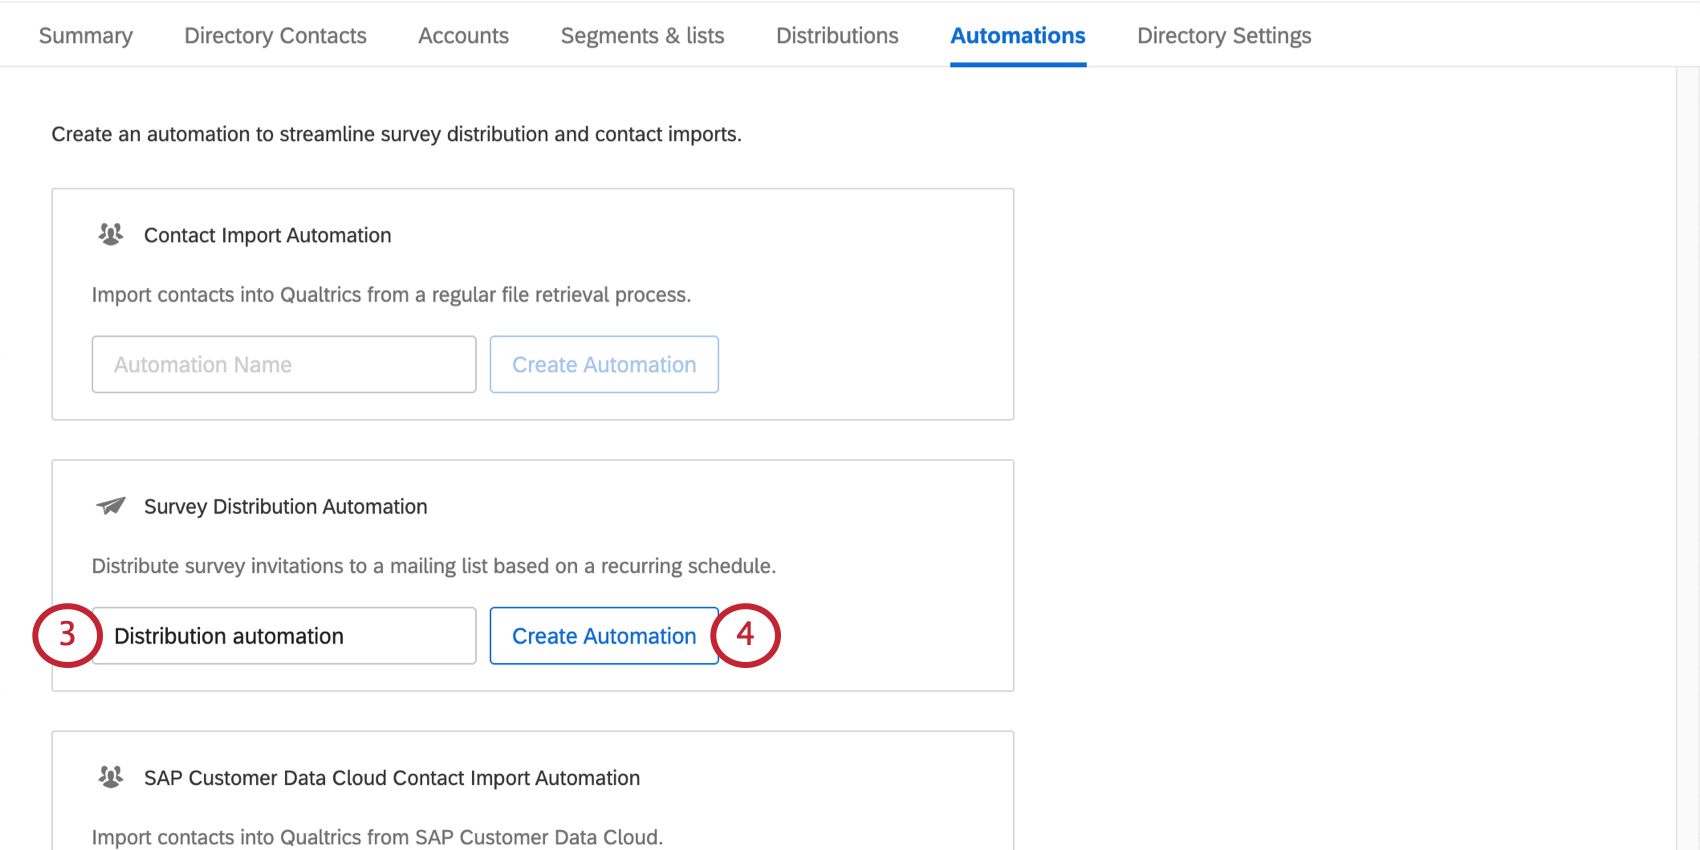 Creating a survey distribution automation